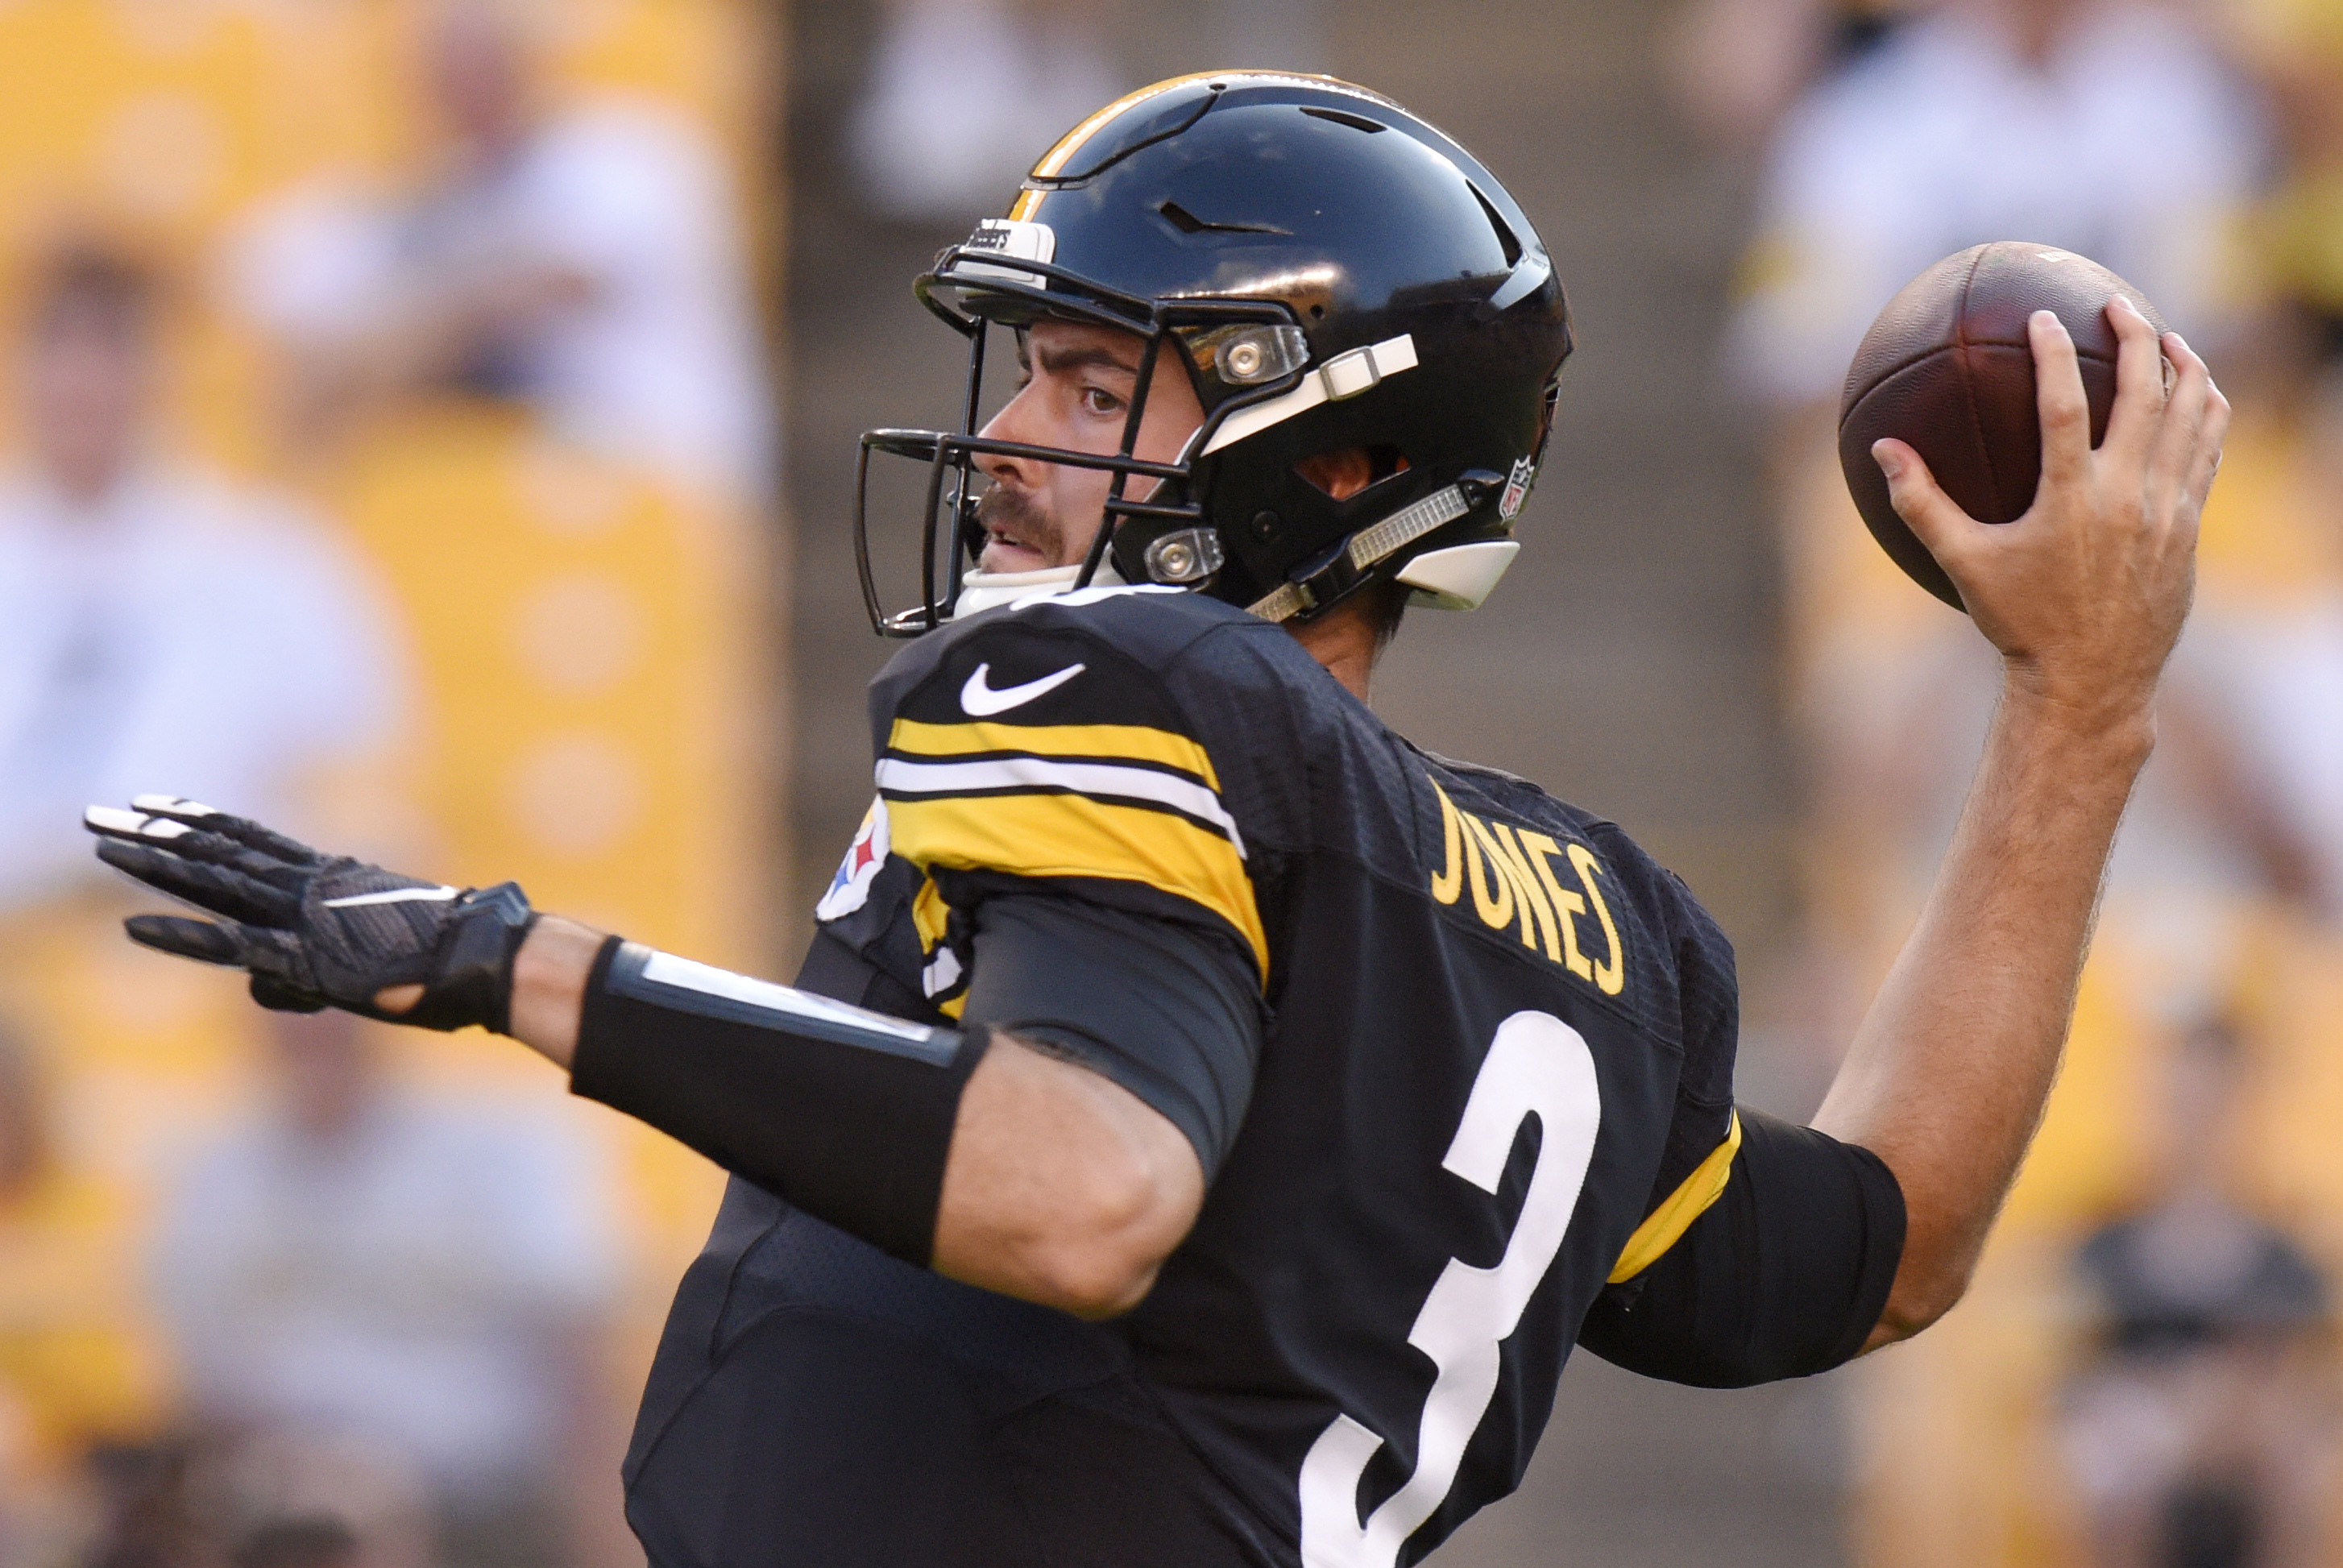 Pittsburgh Steelers quarterback Landry Jones (3) throws a pass during the first half of an NFL preseason football game against the Philadelphia Eagles in Pittsburgh, on Thursday, Aug. 18, 2016. (AP Photo/Don Wright)